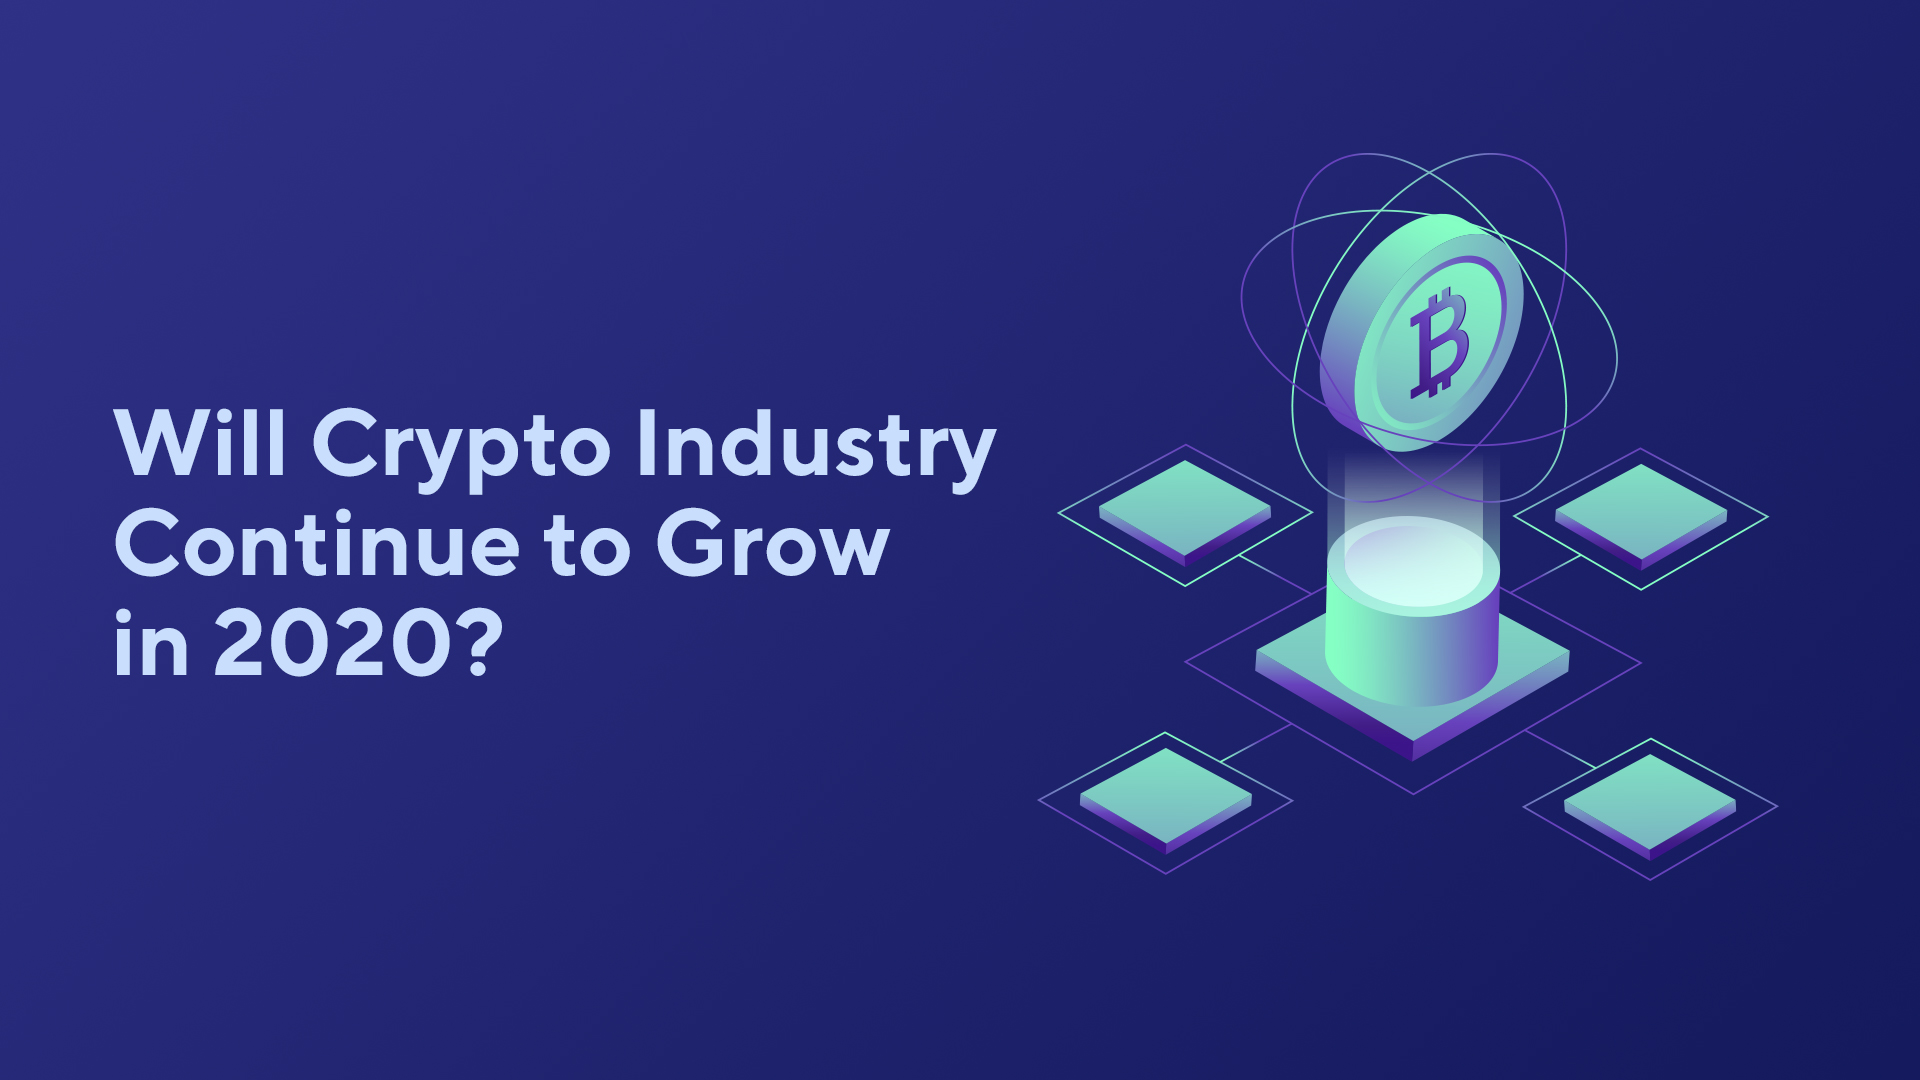 Will Crypto Industry Continue to Grow in 2020?